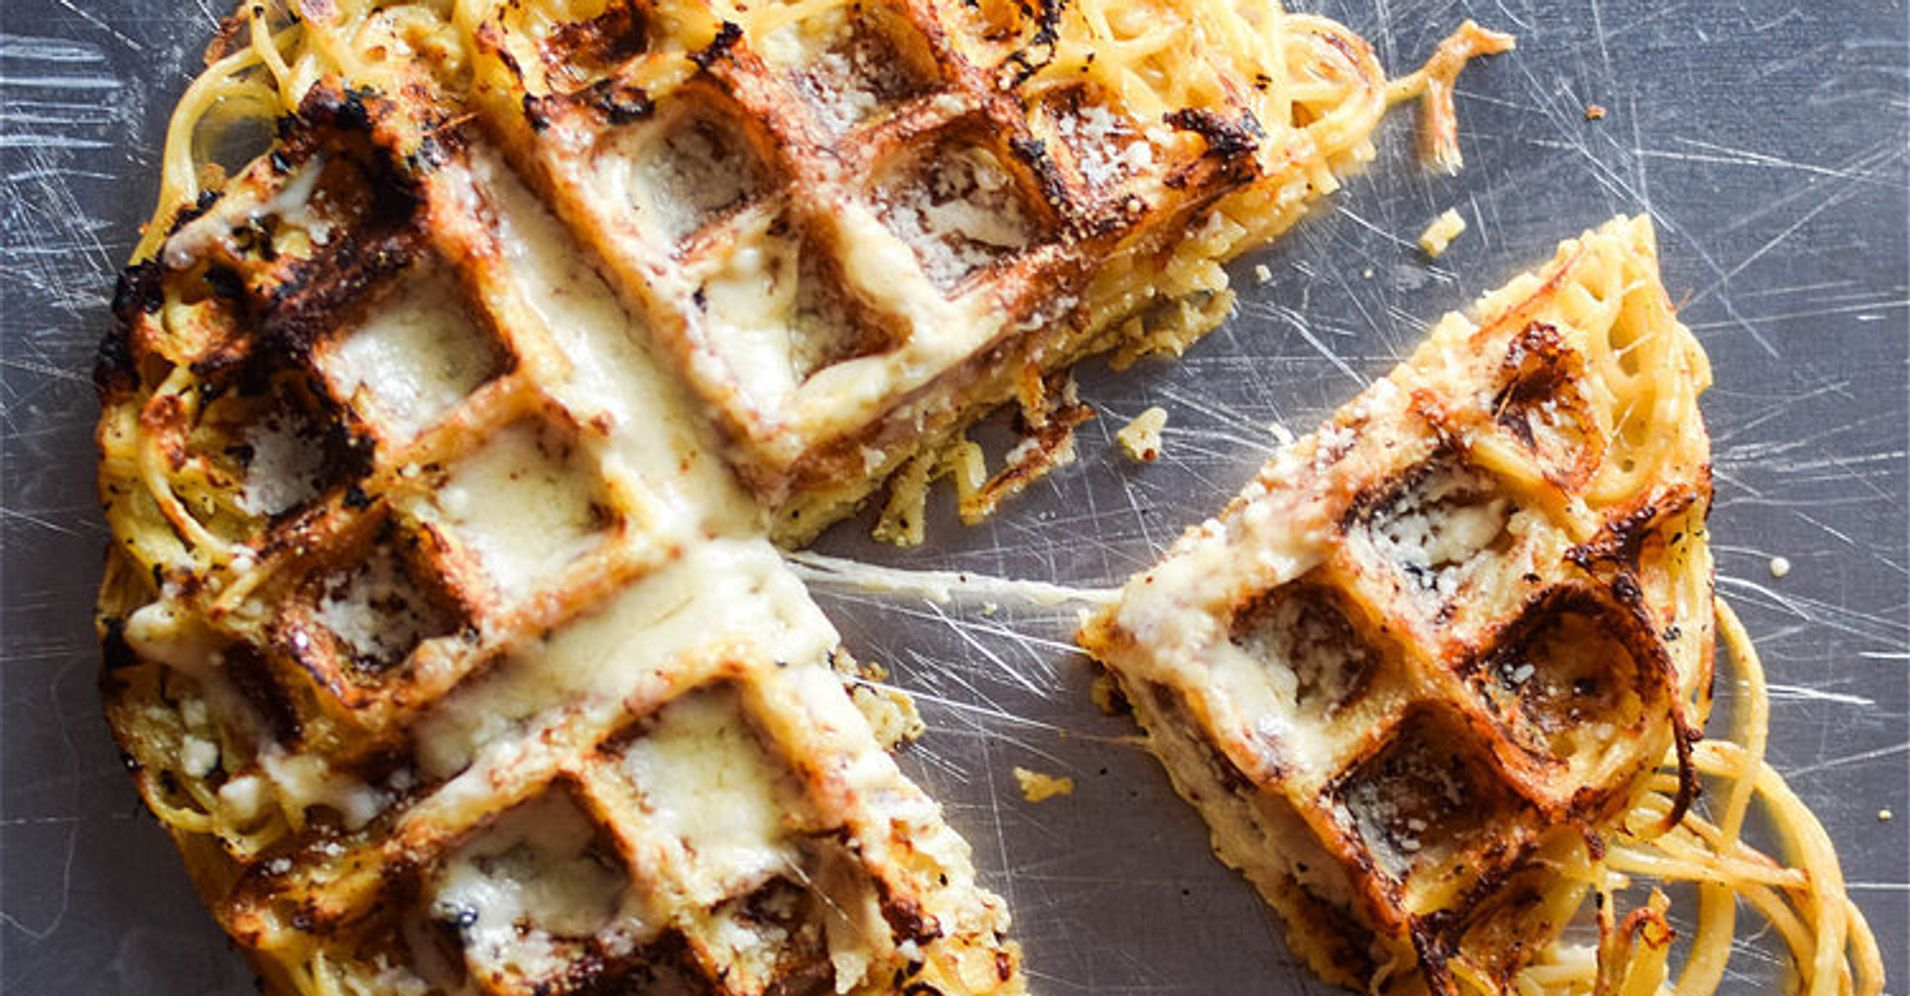 The Greatest Foods That Can Be Made In A Waffle Iron